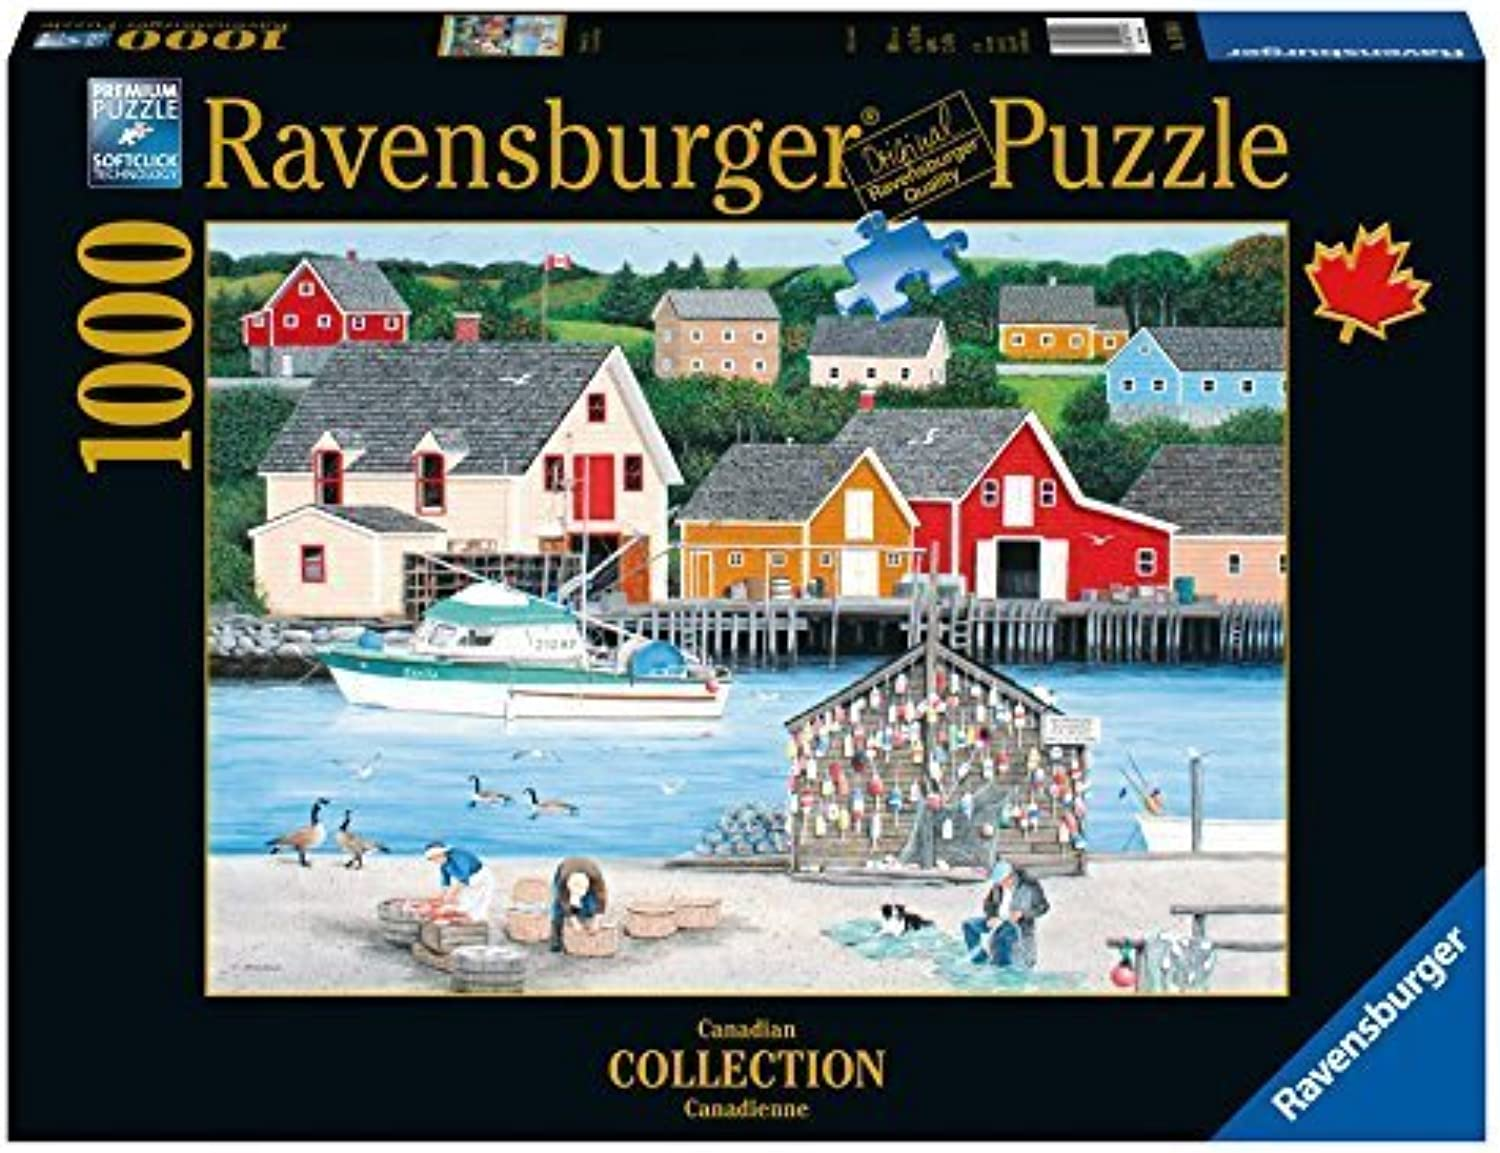 Ravensburger Fisherman's Cove Canadian Collection Canadienne Puzzle (1000Piece) by Ravensburger